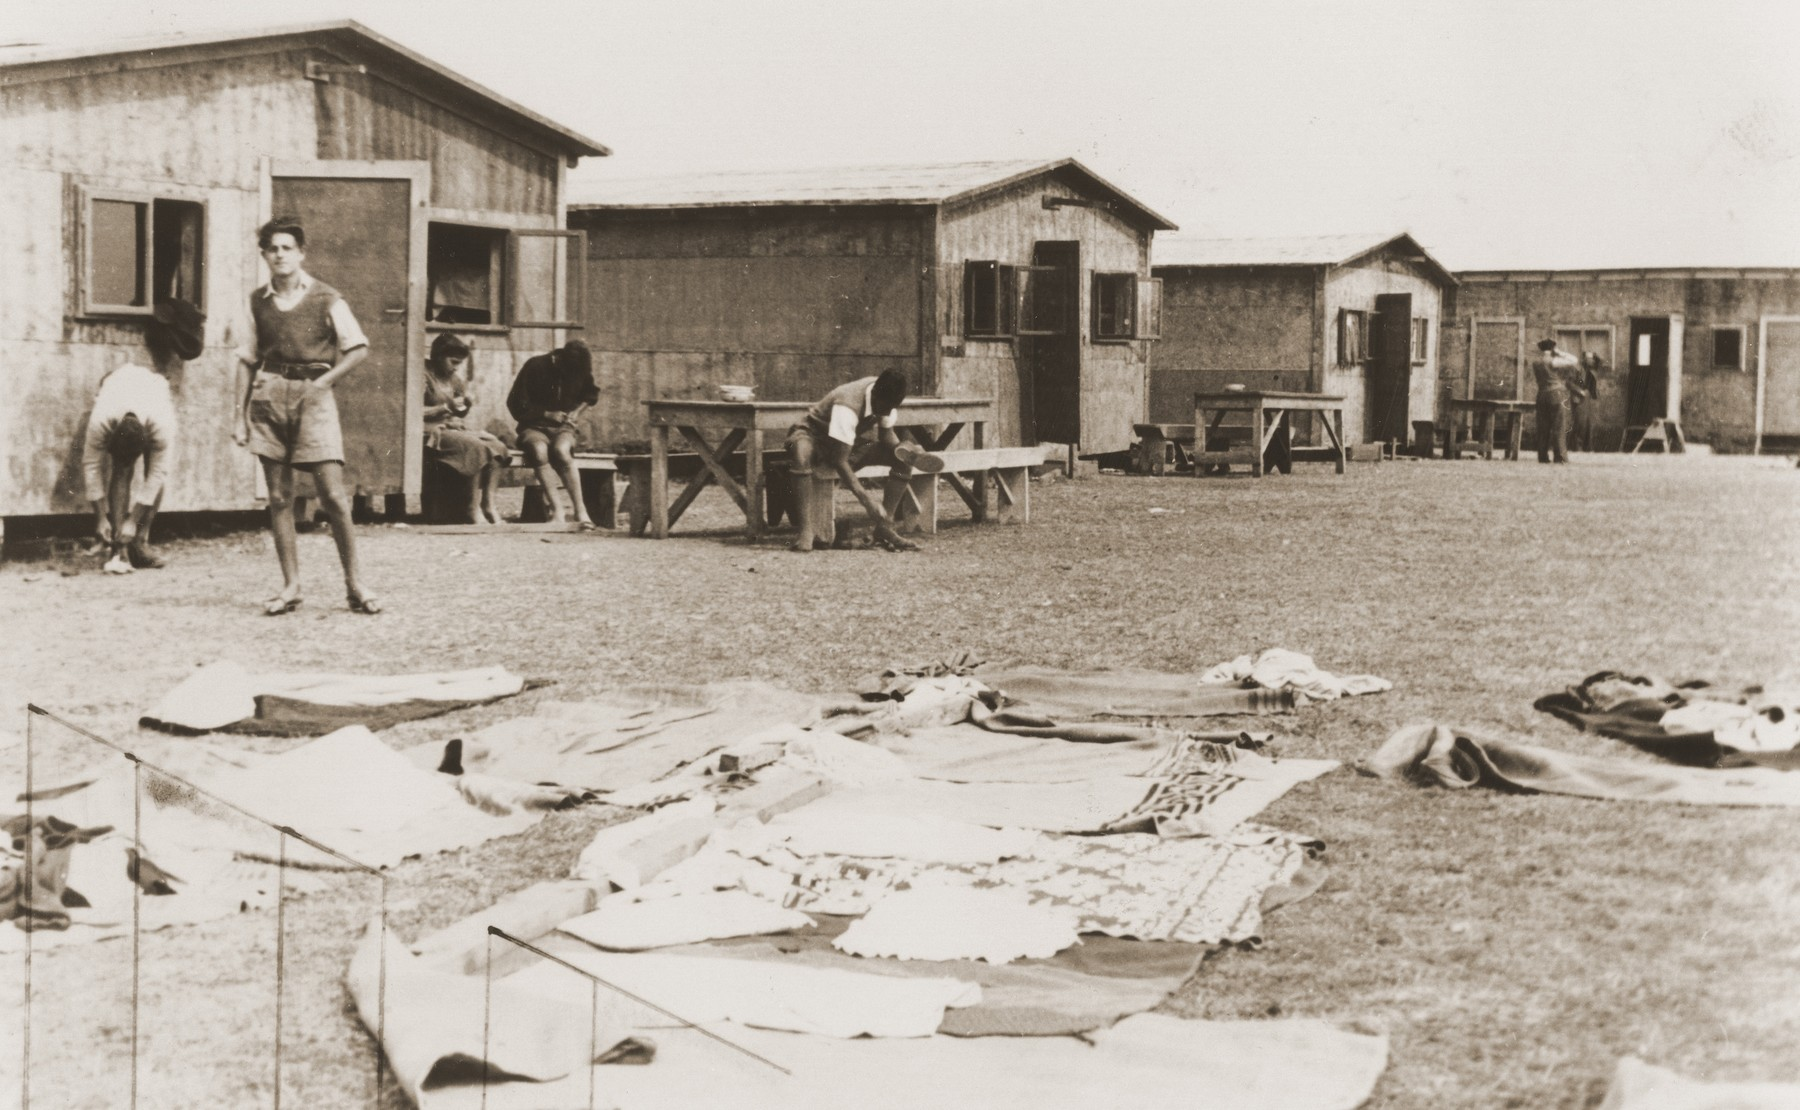 At a refugee camp established for members of the Kladovo transport, Zionist youth perform their daily tasks in front of their barracks.